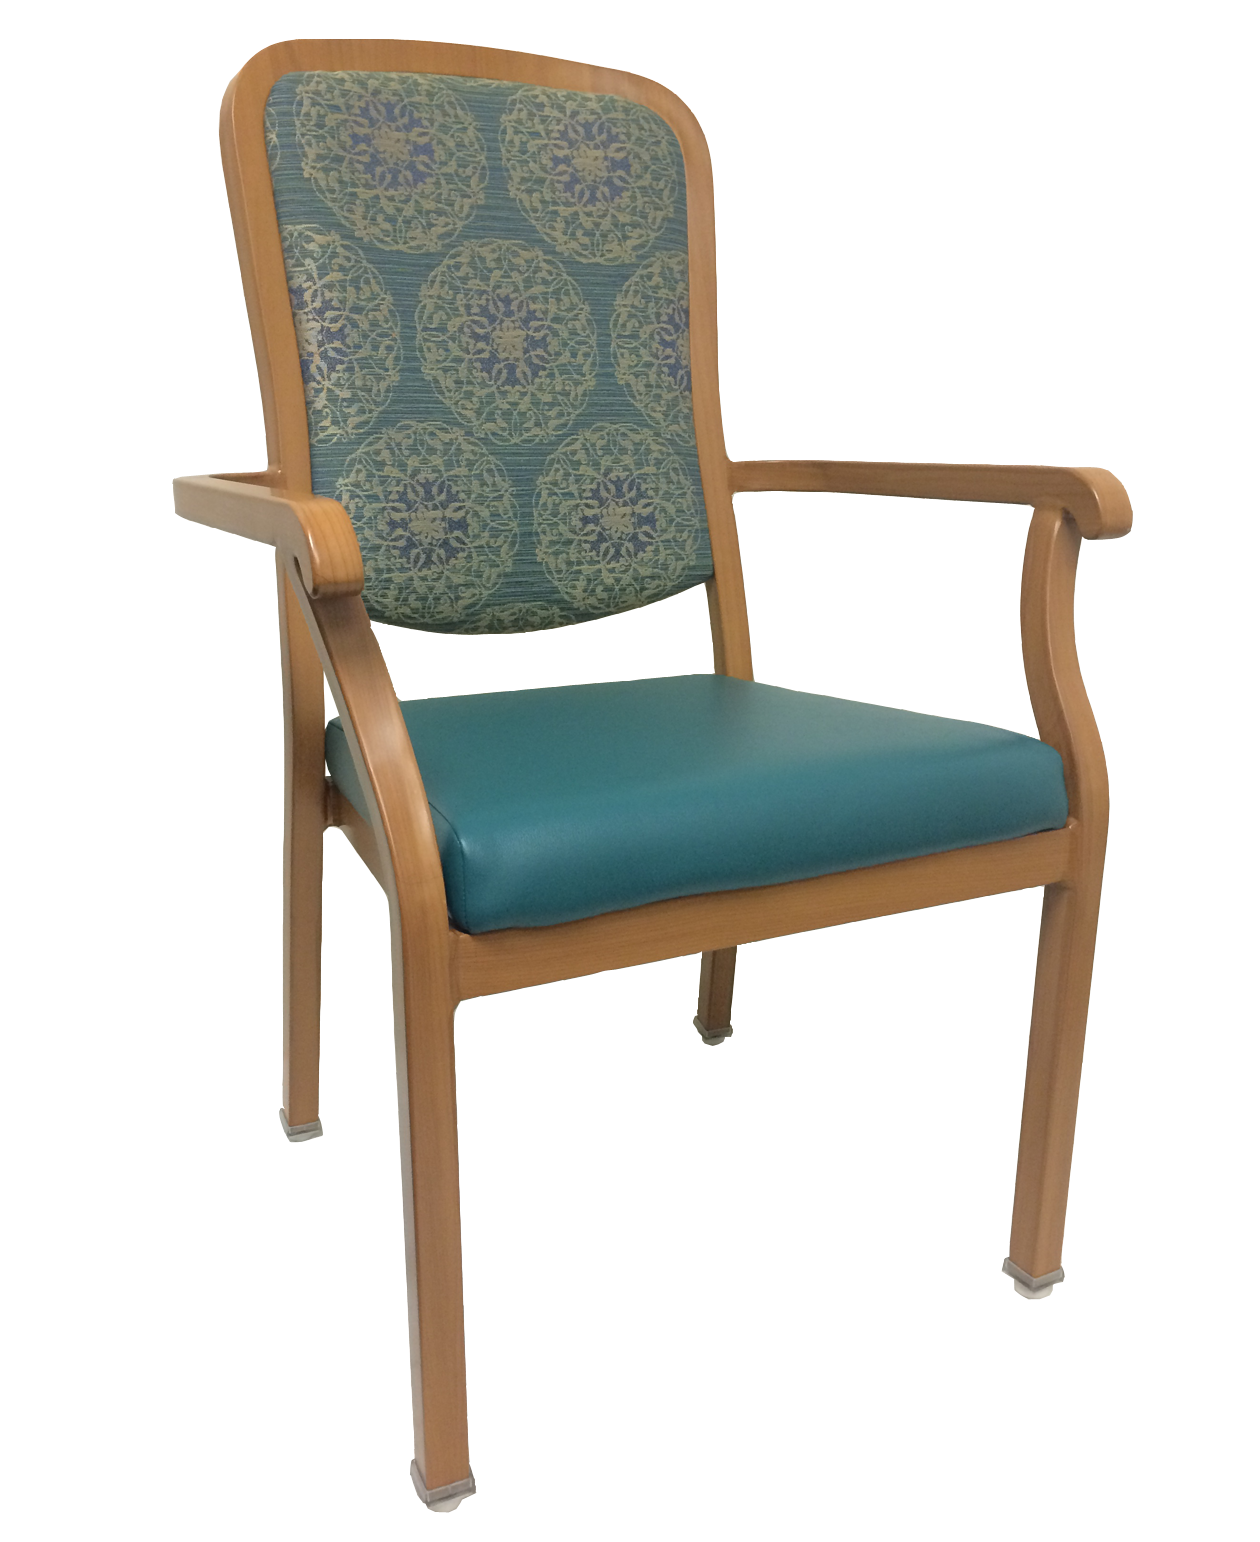 Winchester Duracare Seating Company